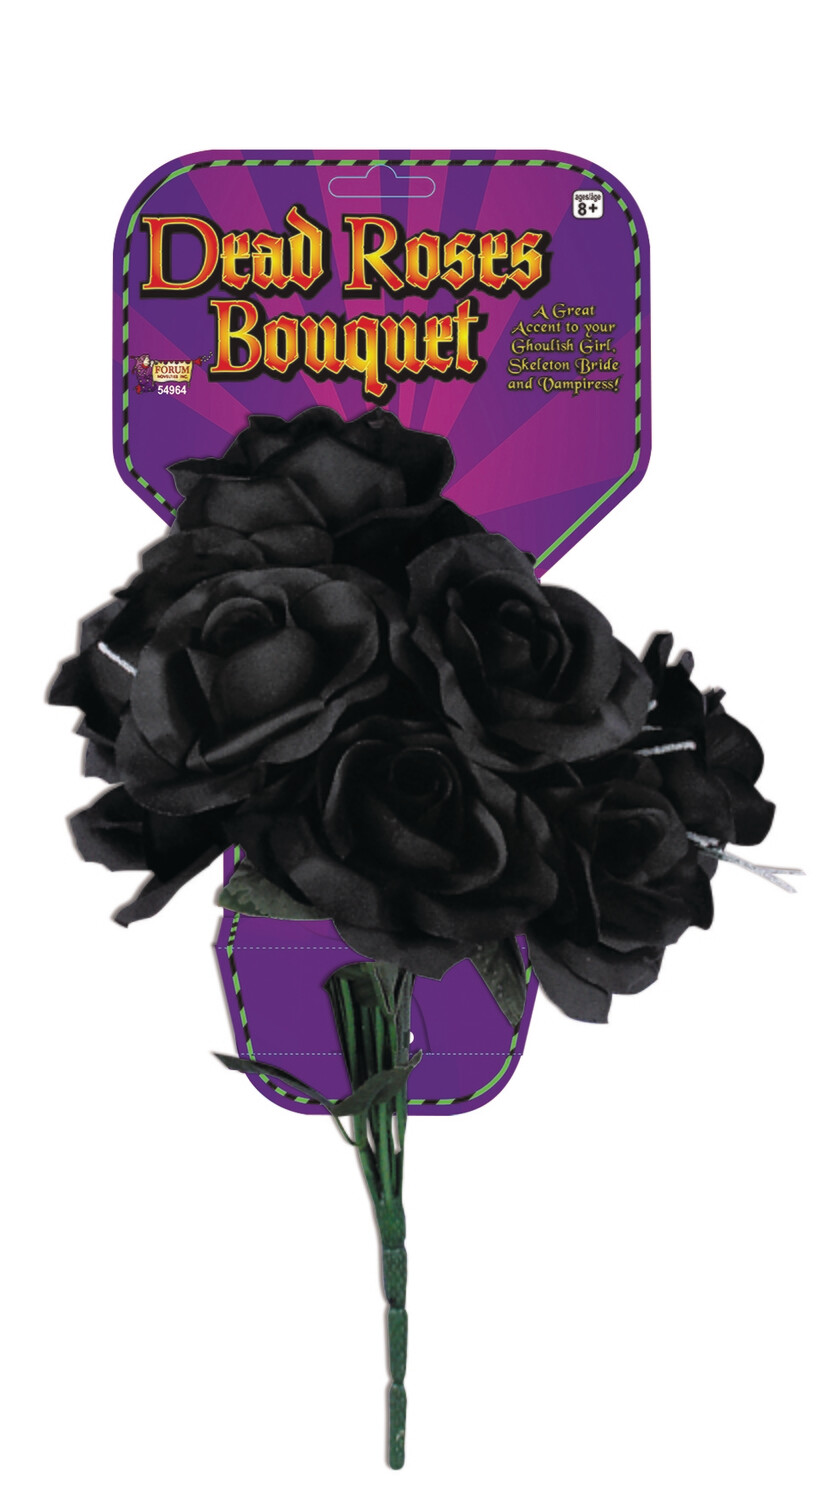 Dead Rose Bouquet - All Black